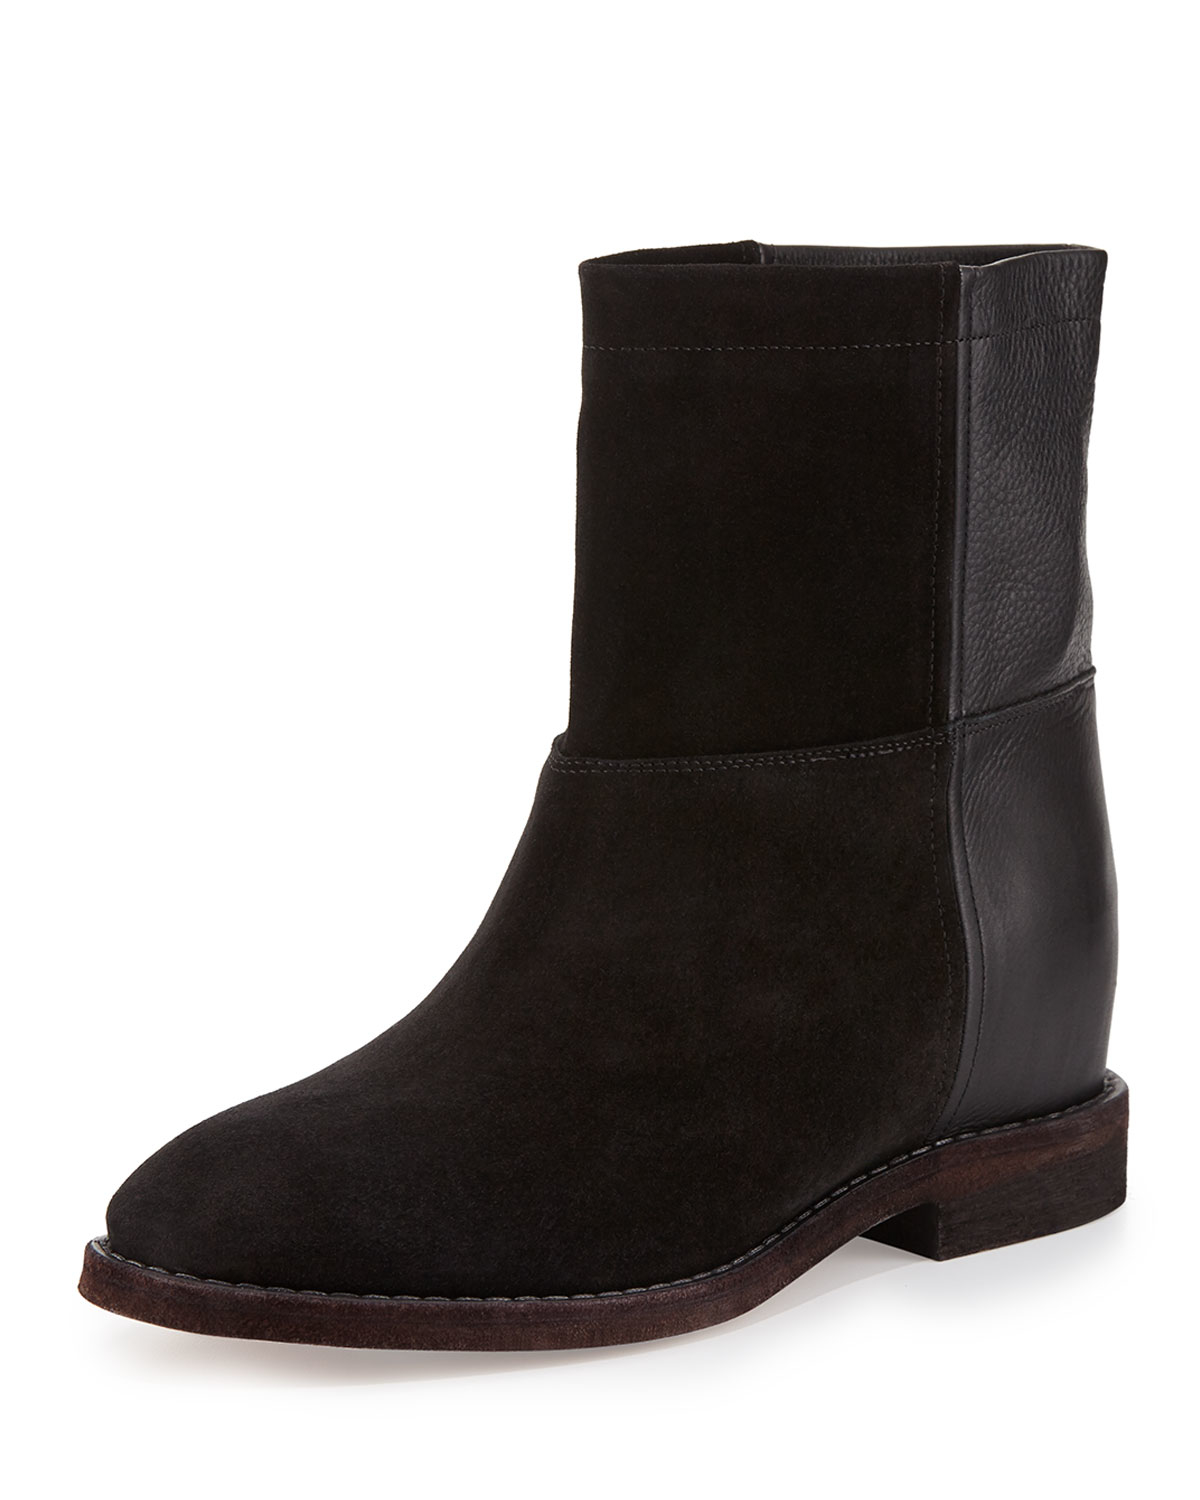 Vince Grayson Suede & Leather Short Boot in Black | Lyst